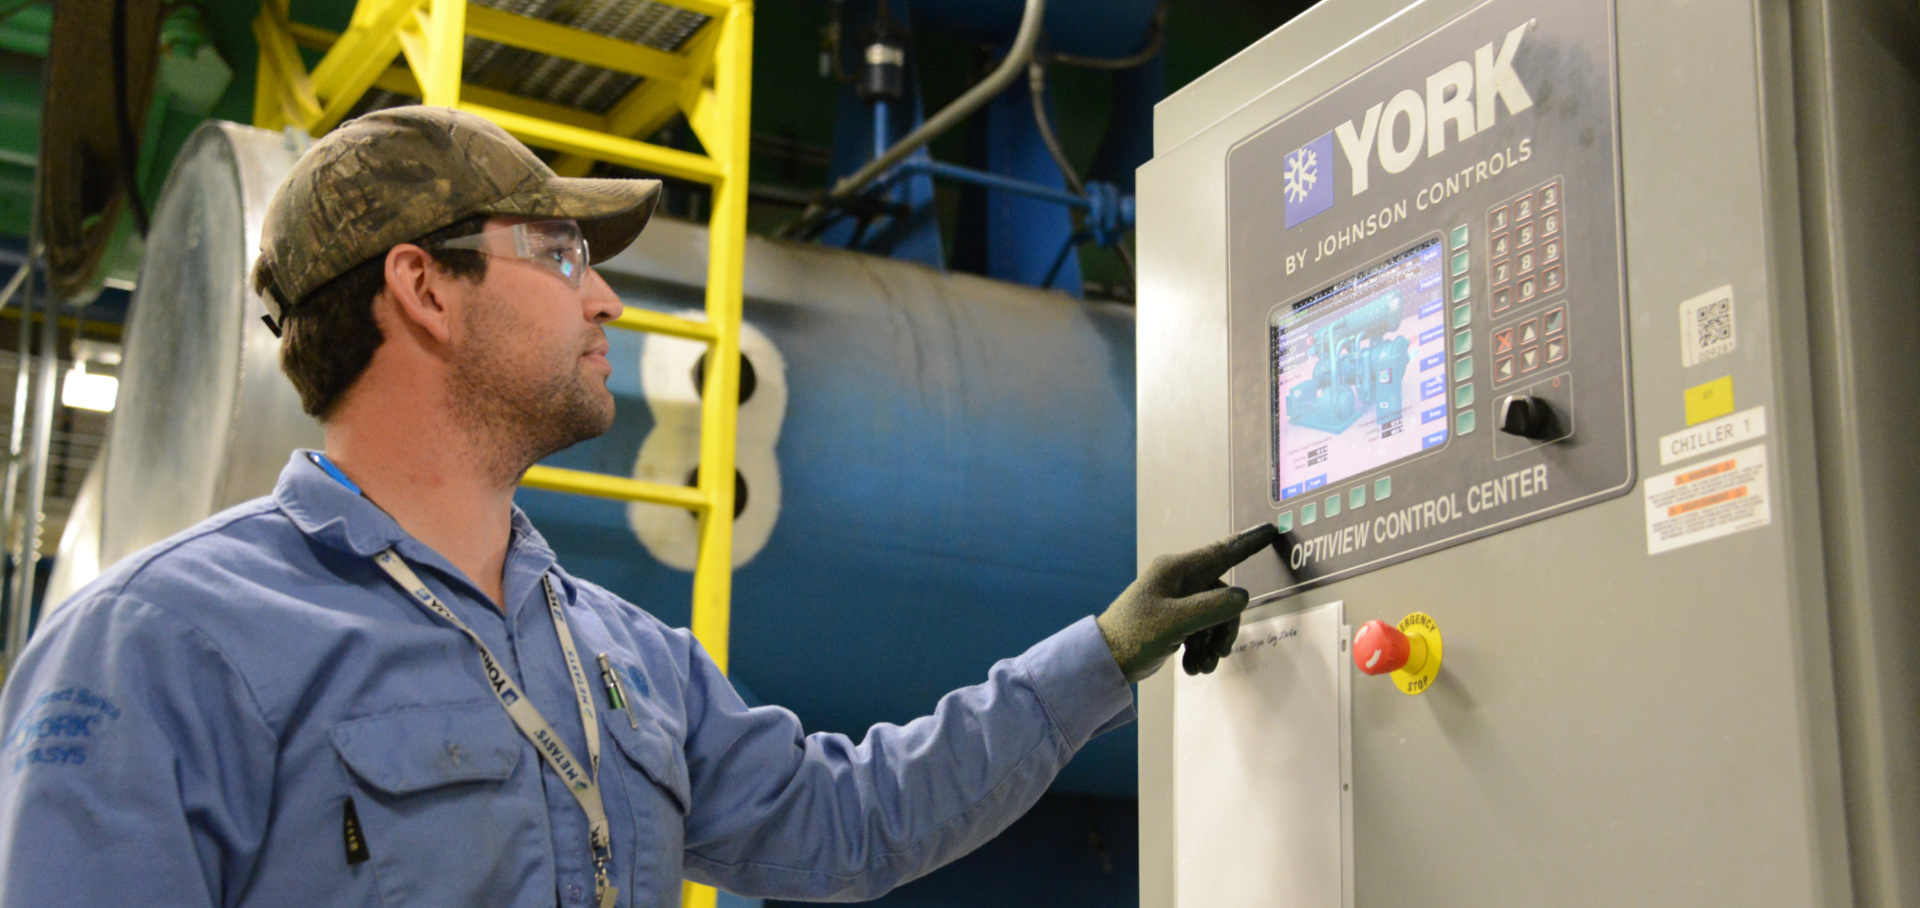 HVAC Technician programing at the York Optiview Control Center